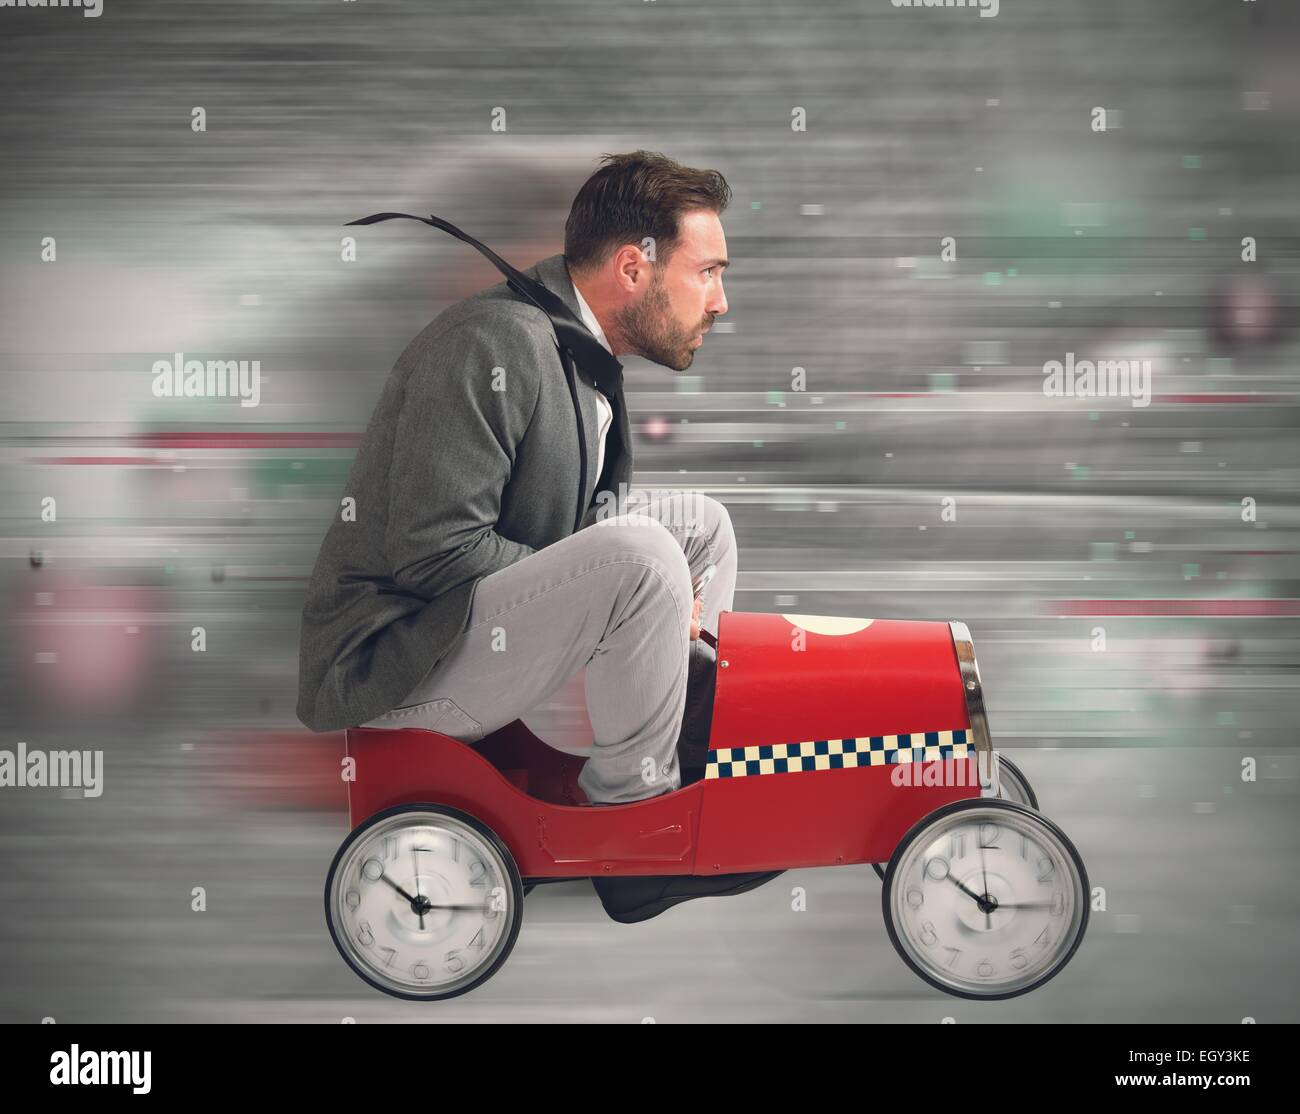 Race against time - Stock Image